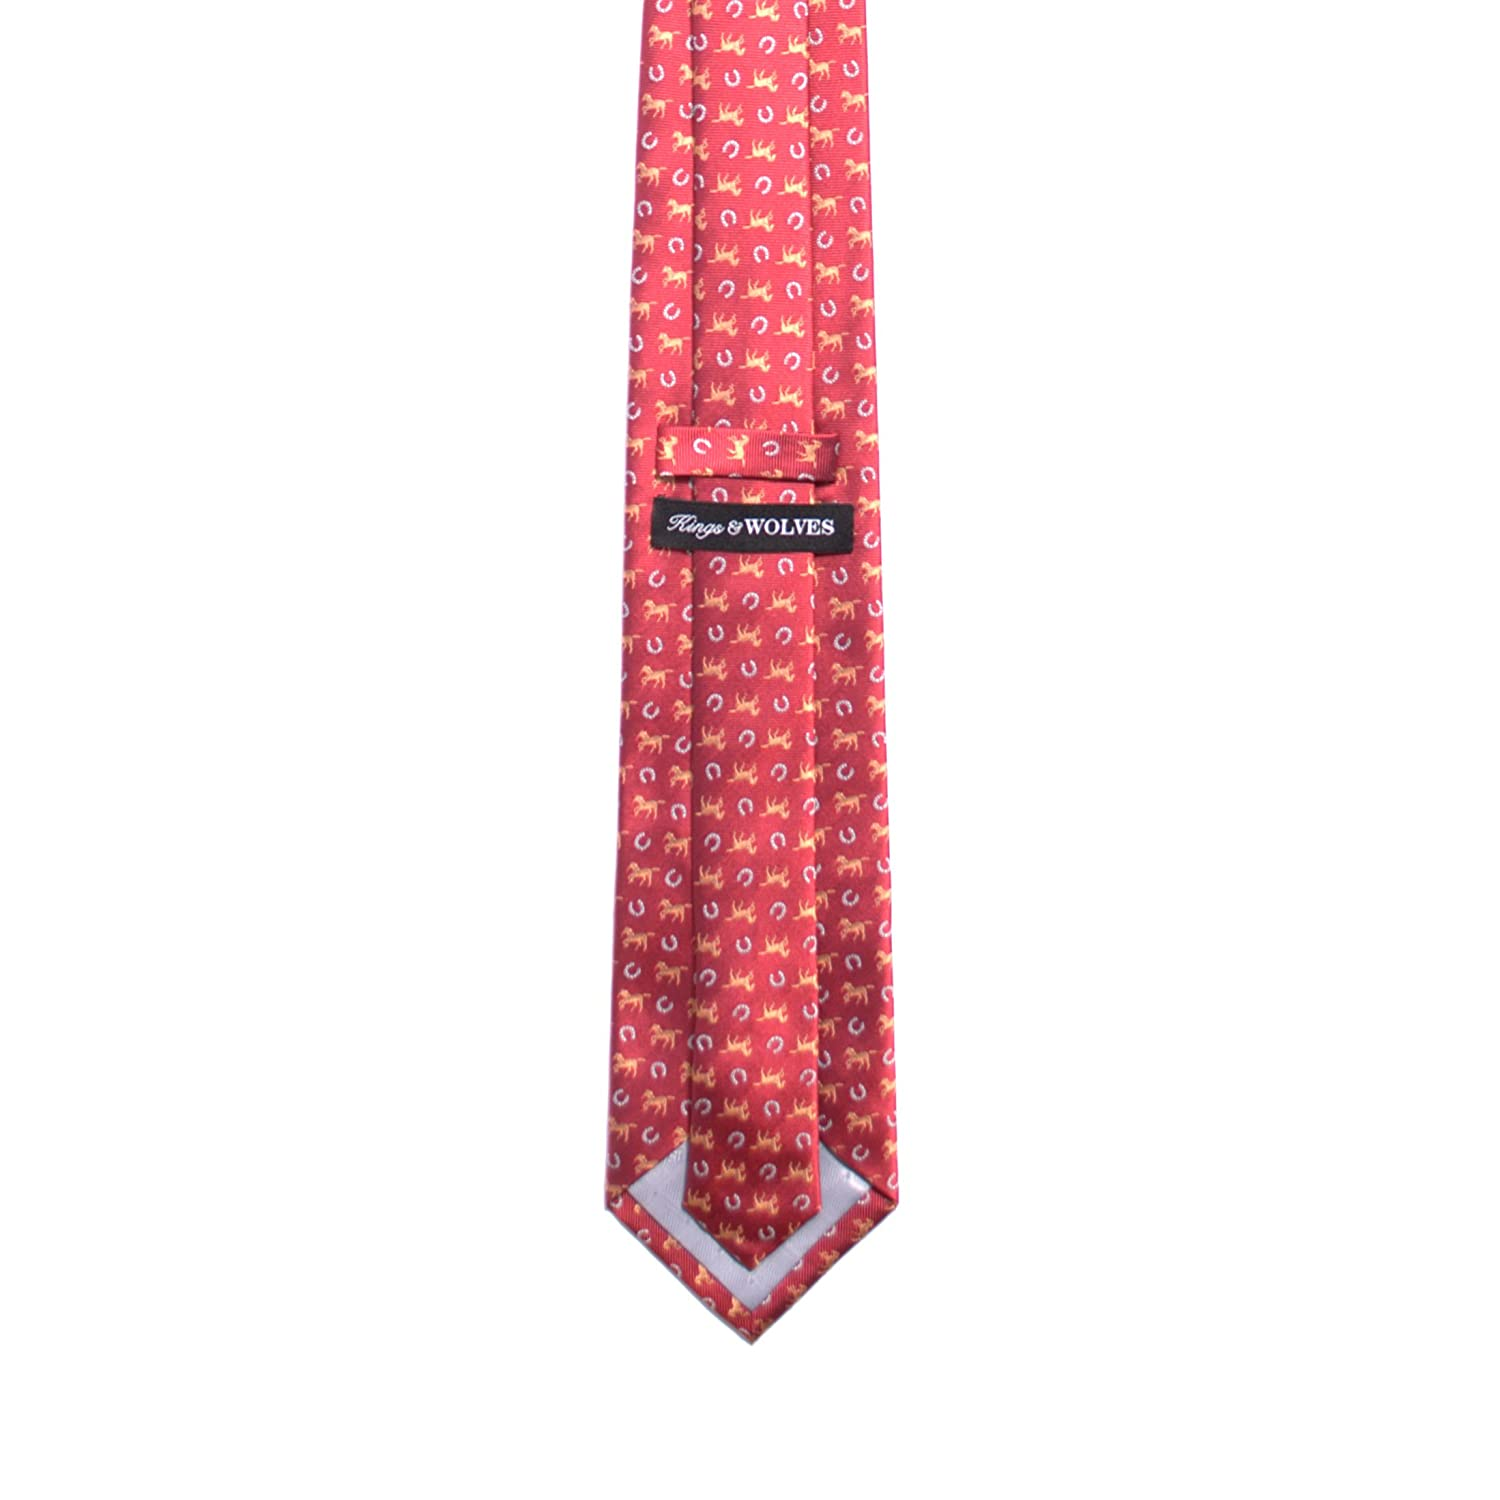 Red Kings and Wolves Mens 100/% Silk Neckties Jacquard Horseshoe Tie